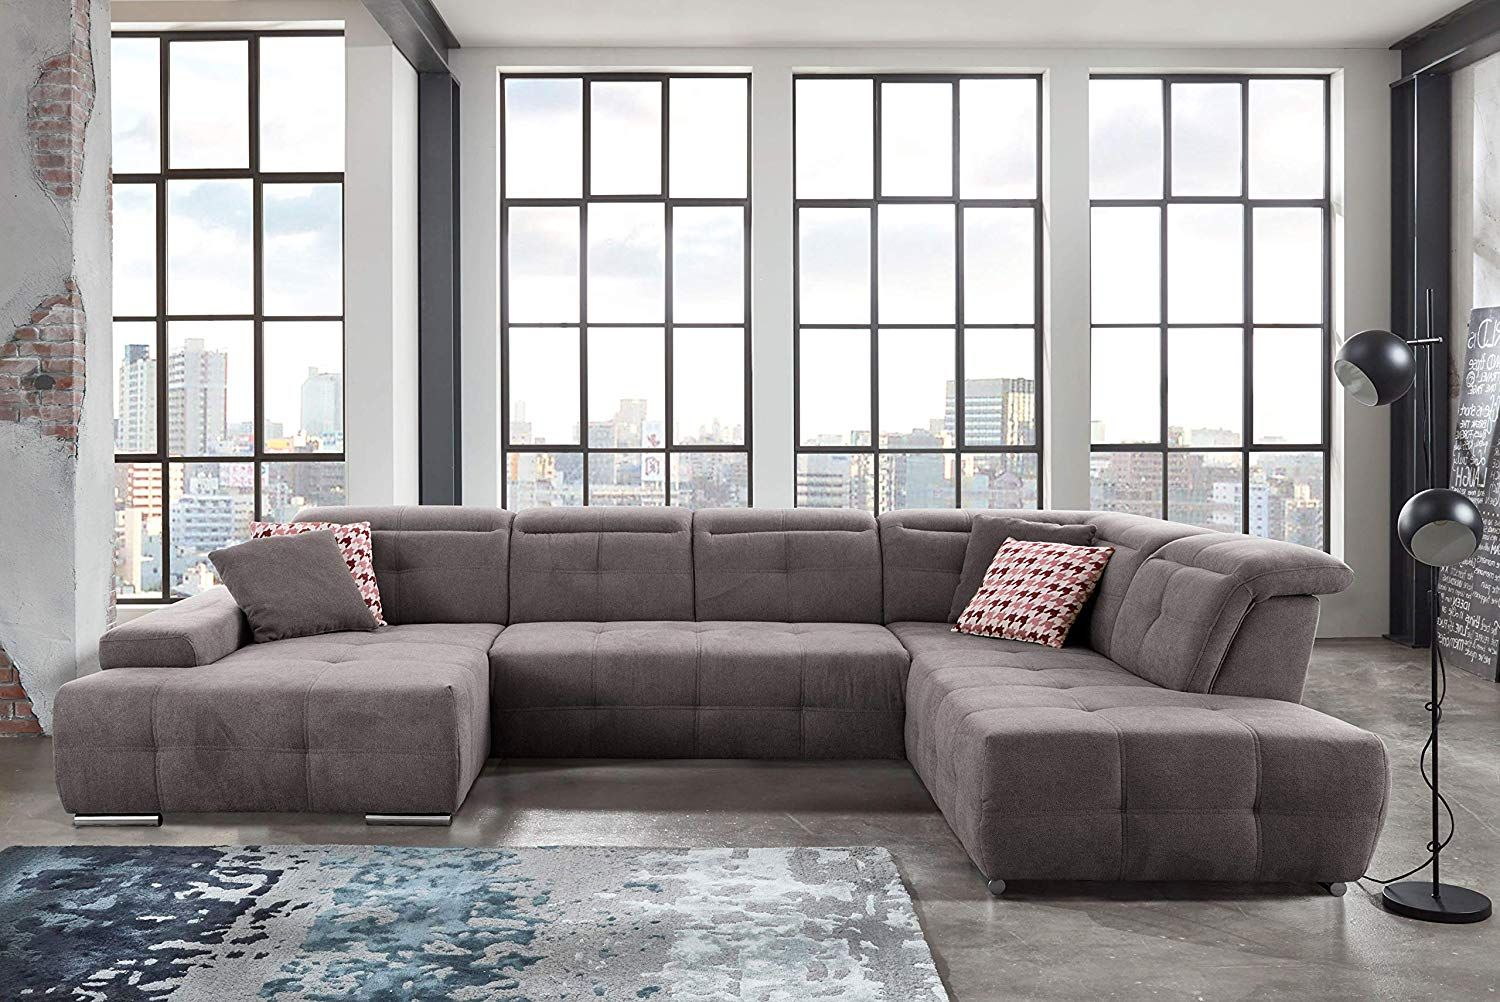 Trendige Couchgarnituren Cavadore #wohnlandschaft #mistrel Mit #ottomanen Rechts / Xxl- #sofa In U-form / Inkl. Kopfteilvers… | Small Sectional Sofa, Sectional Sofa, Fabric Sectional Sofas